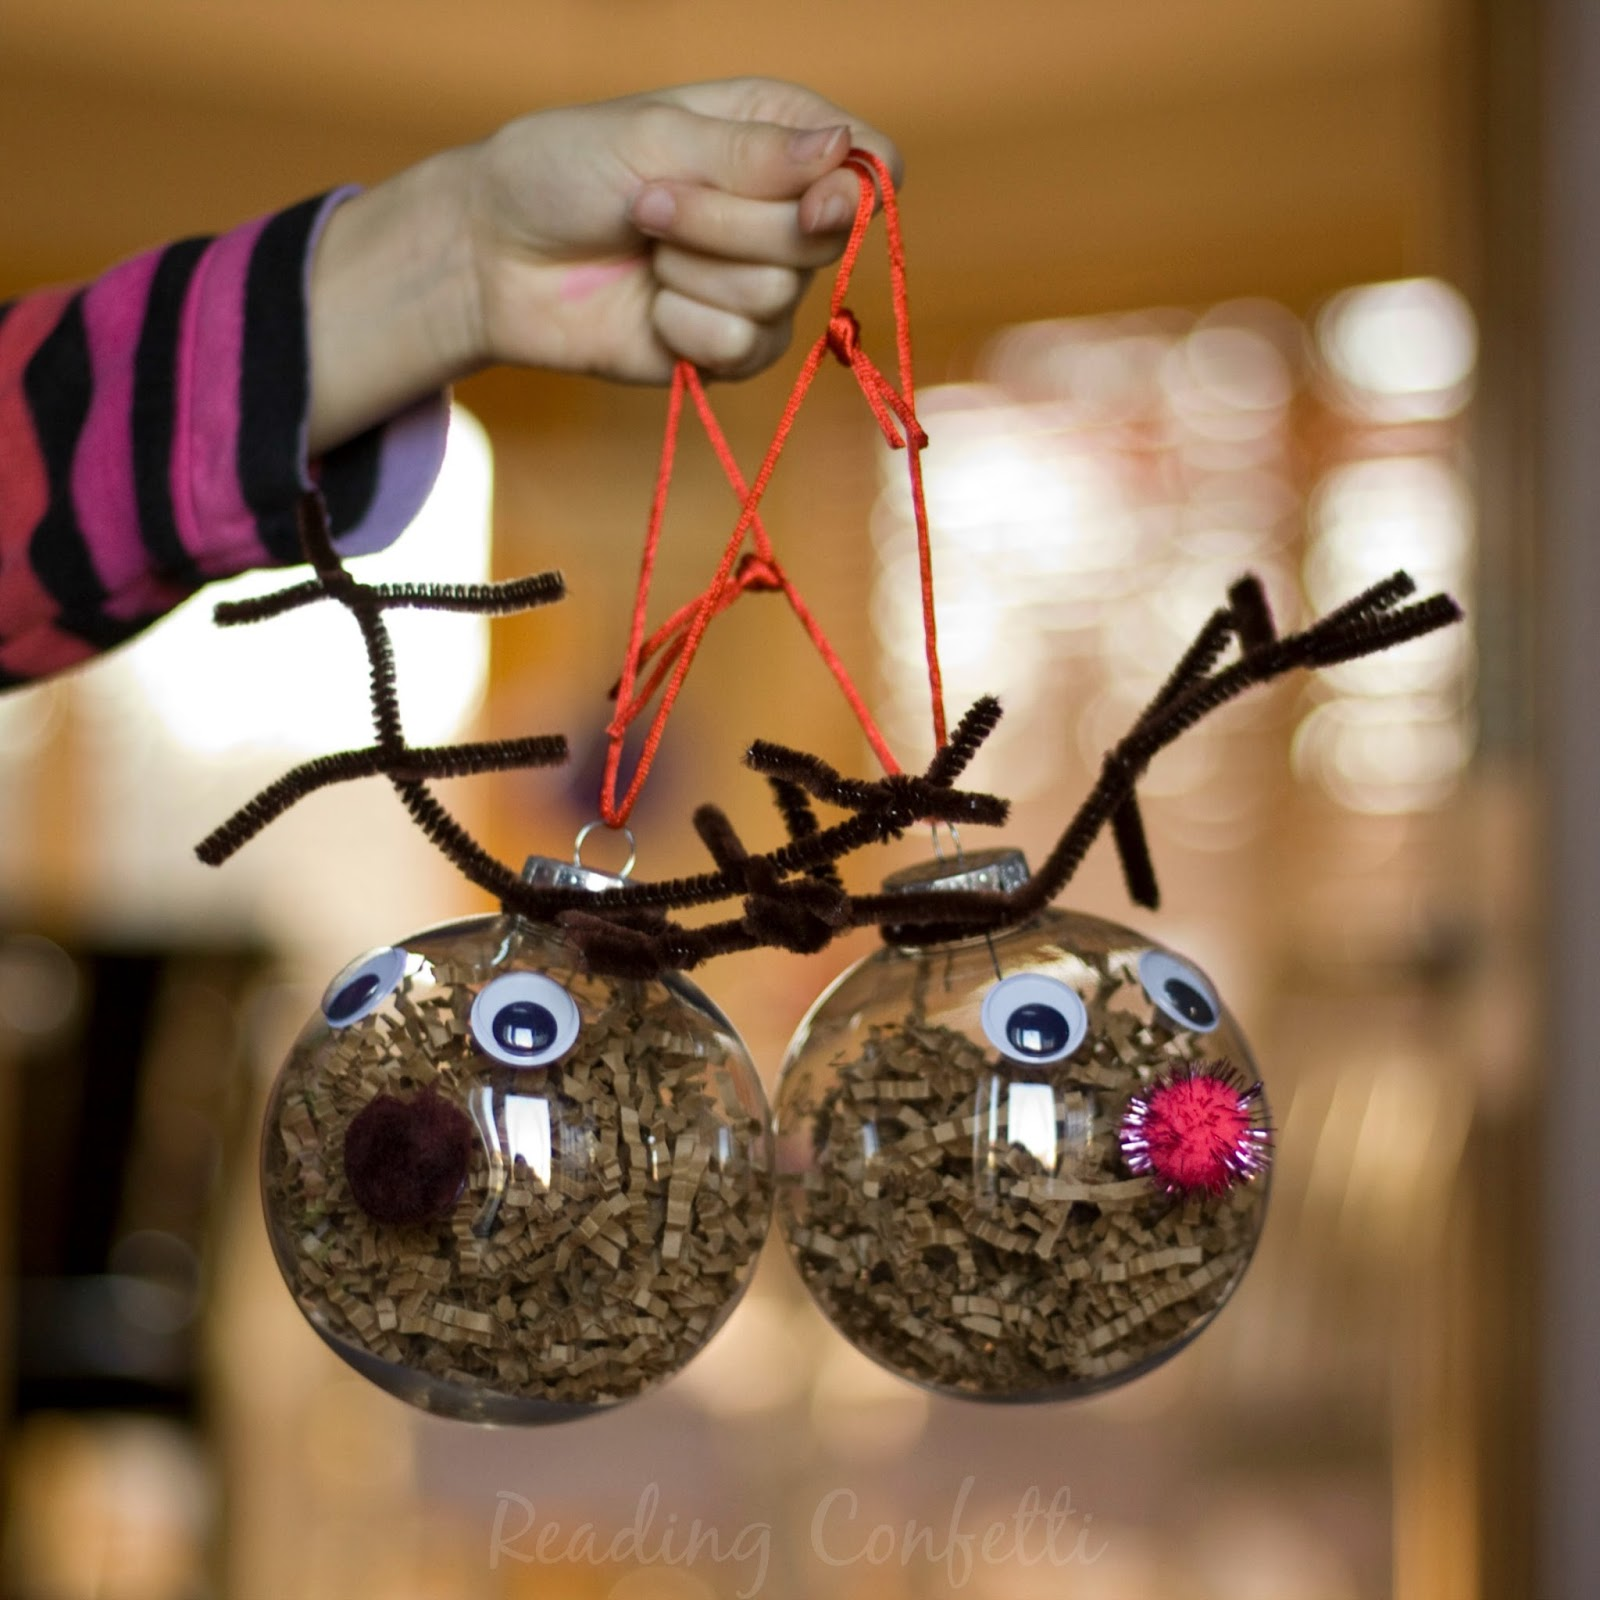 Clear christmas bulbs for crafting - Easy To Make Reindeer Ornaments